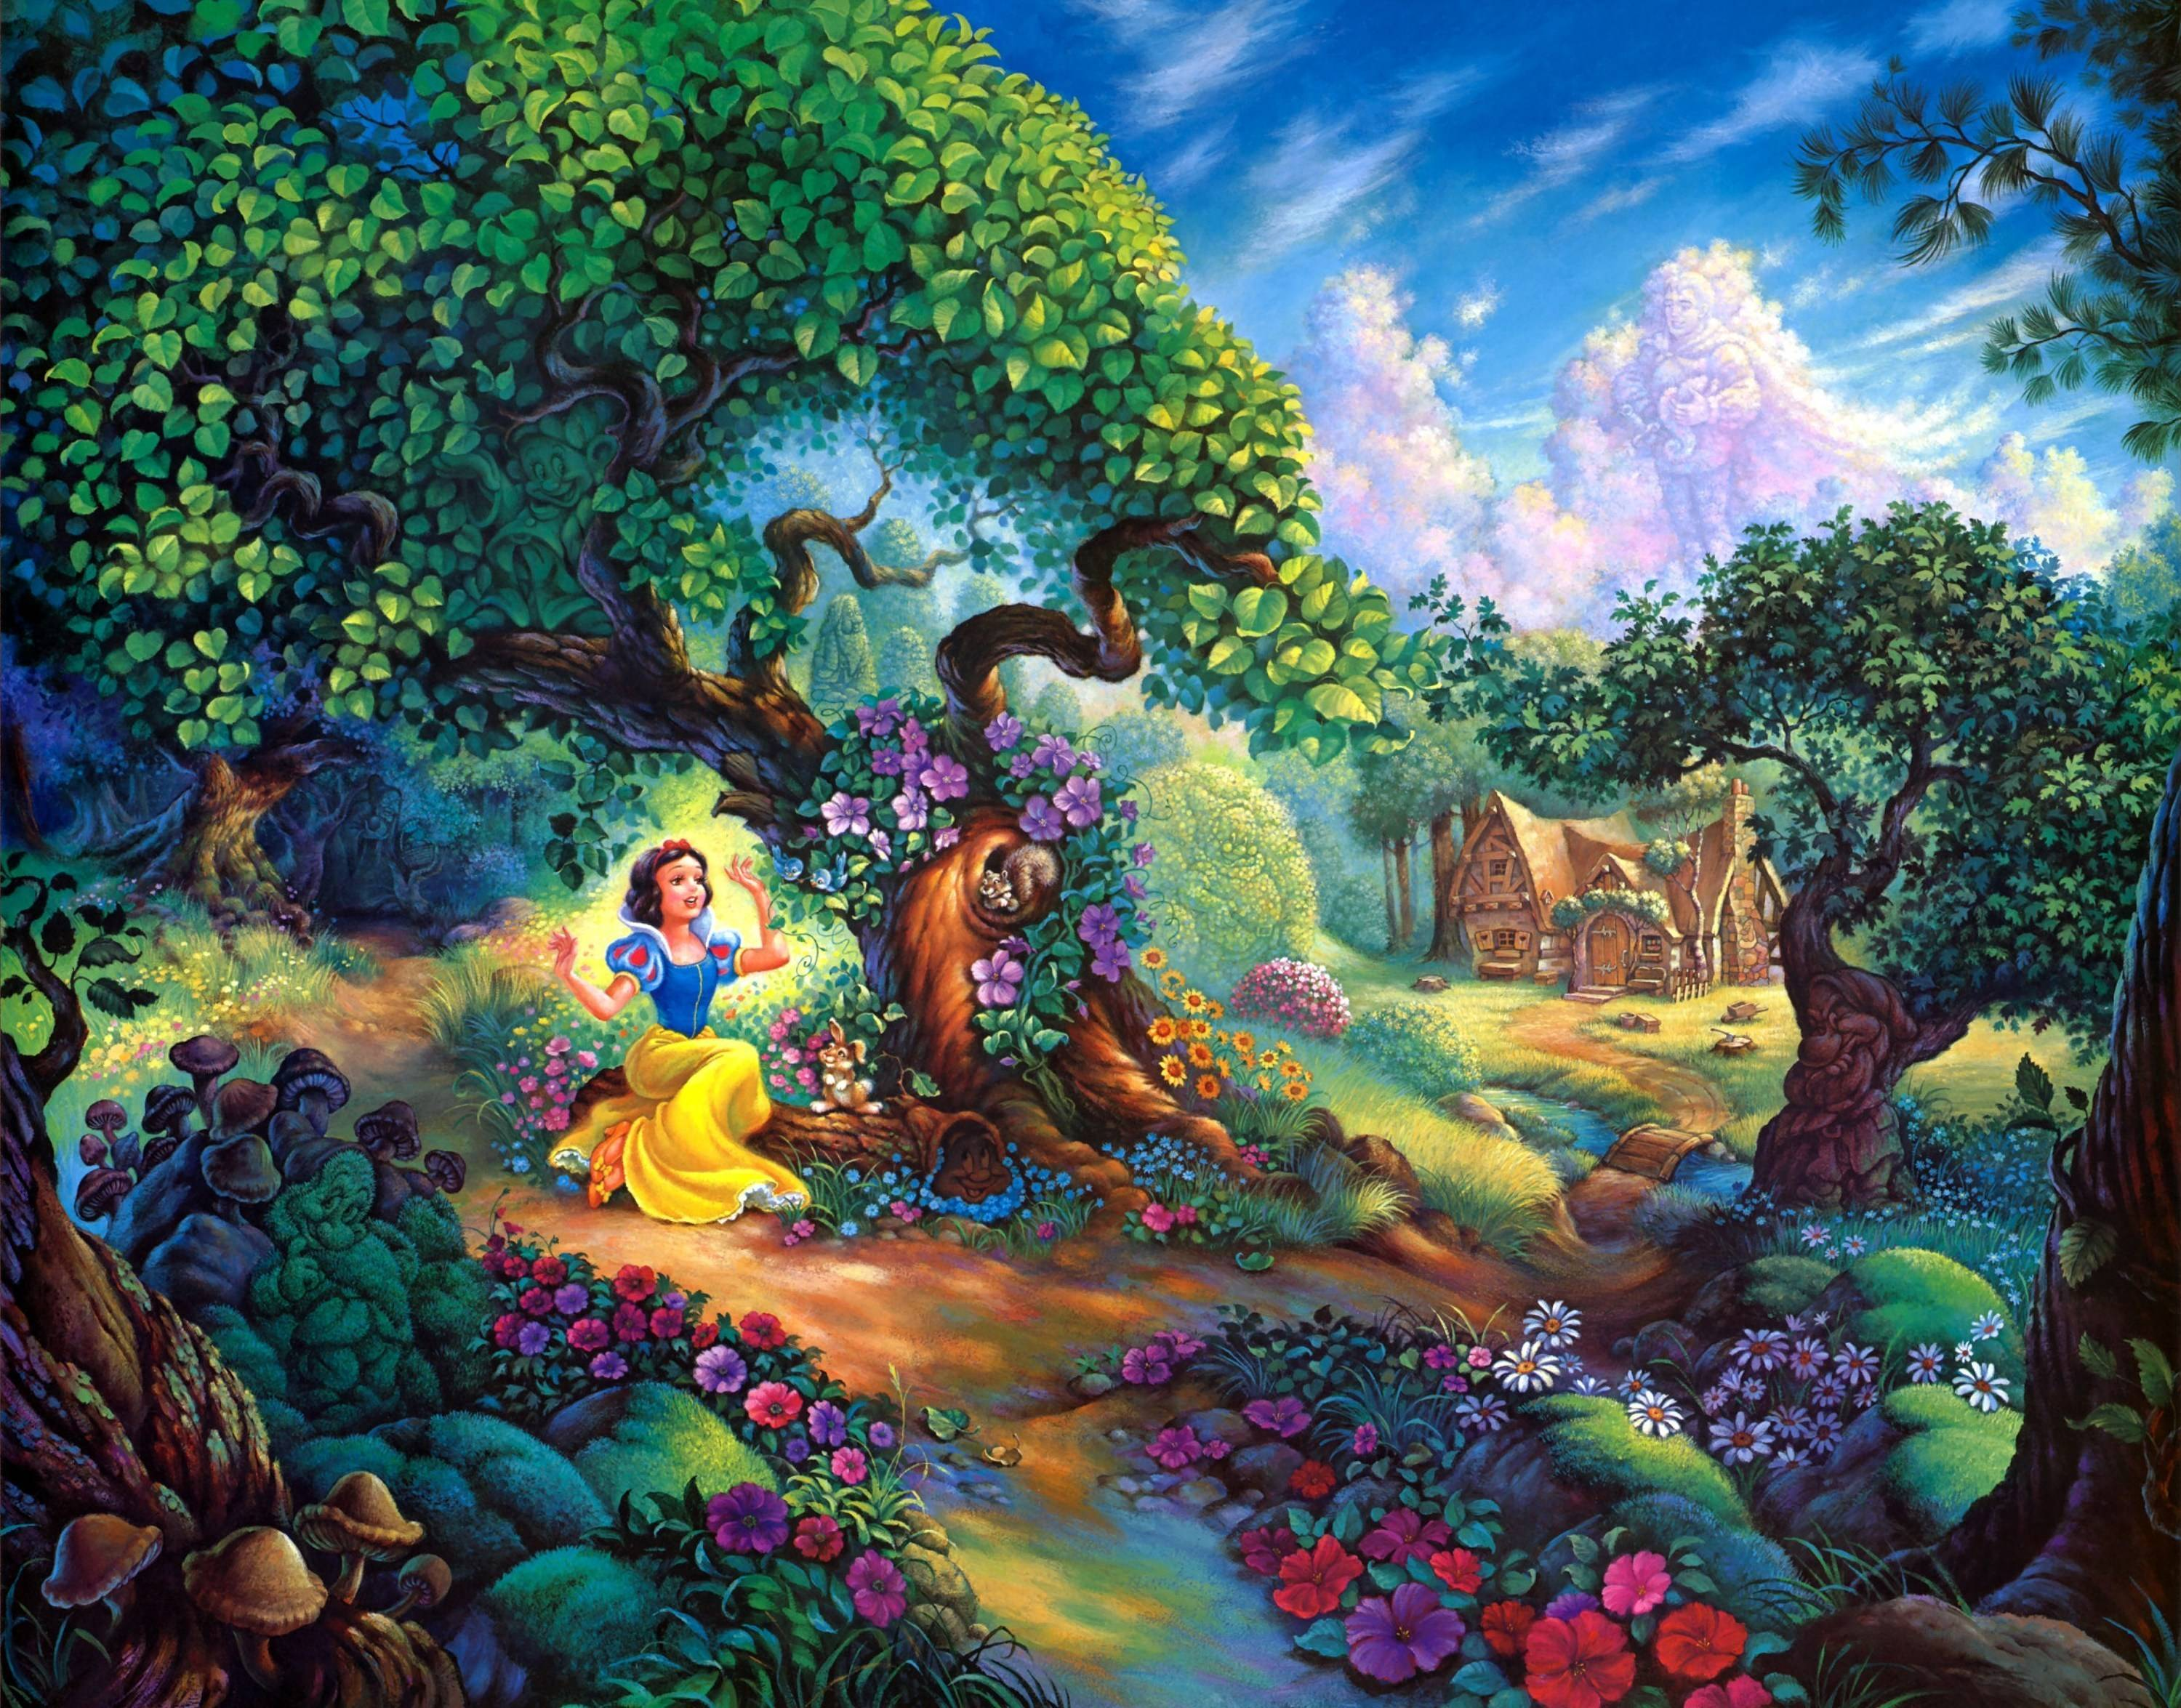 Snow White And The Seven Dwarfs Wallpapers Wallpaper Cave